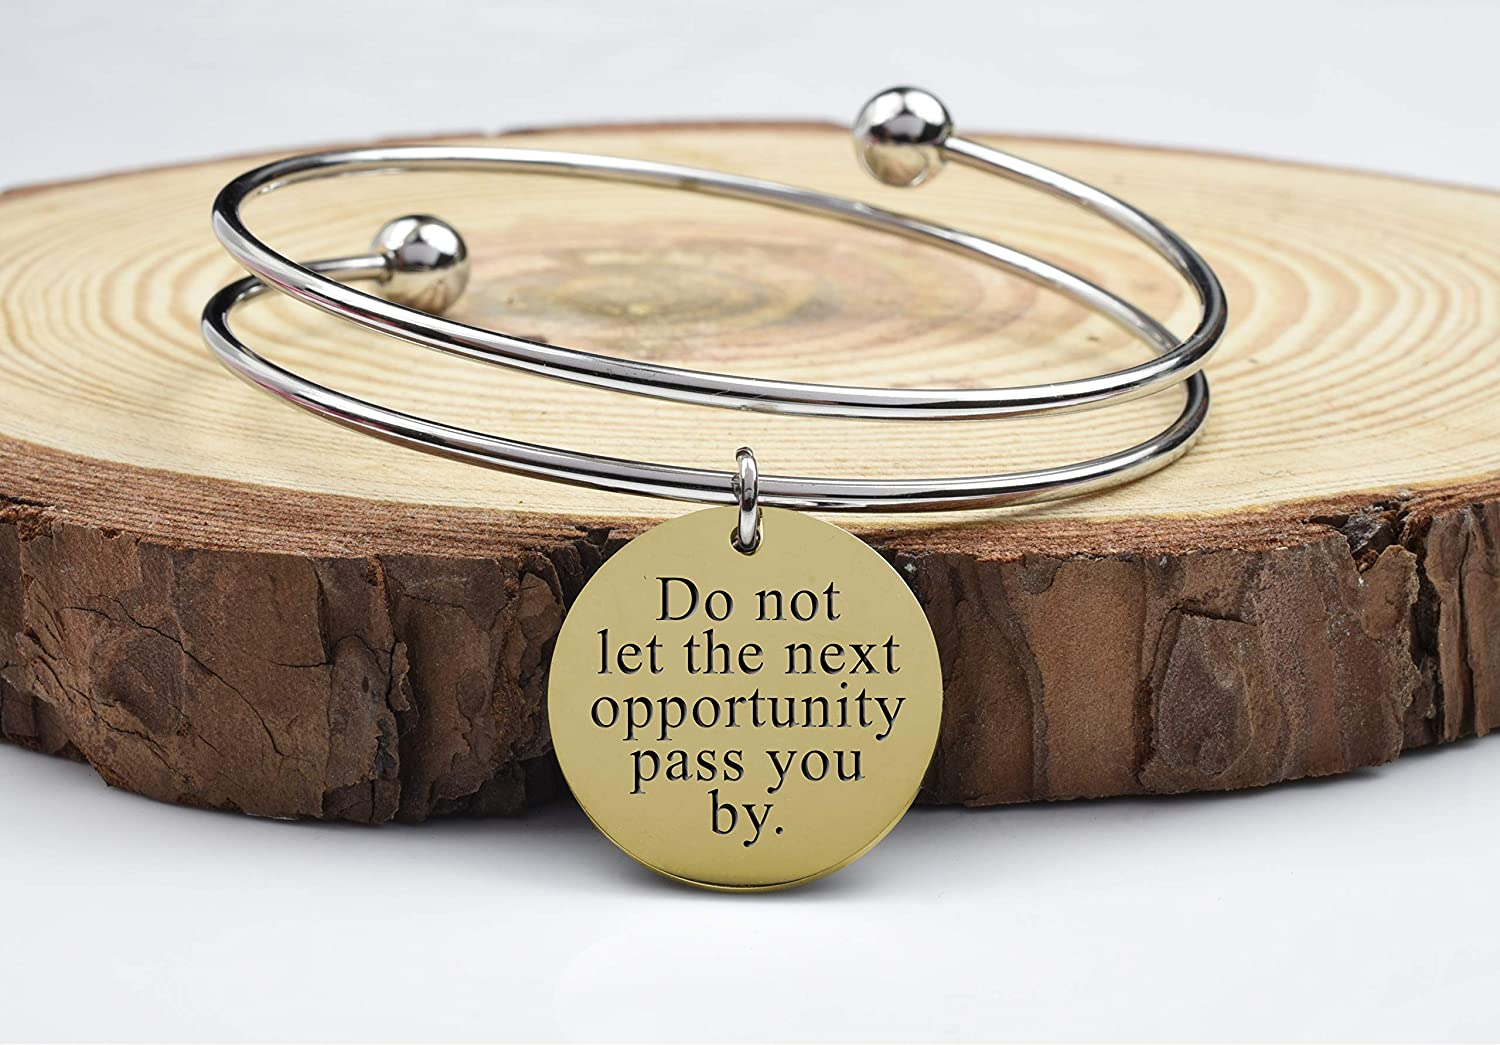 Two-Tone Double Layer Inspirational Bangles By Pink Box - Next Opportunity - Gold